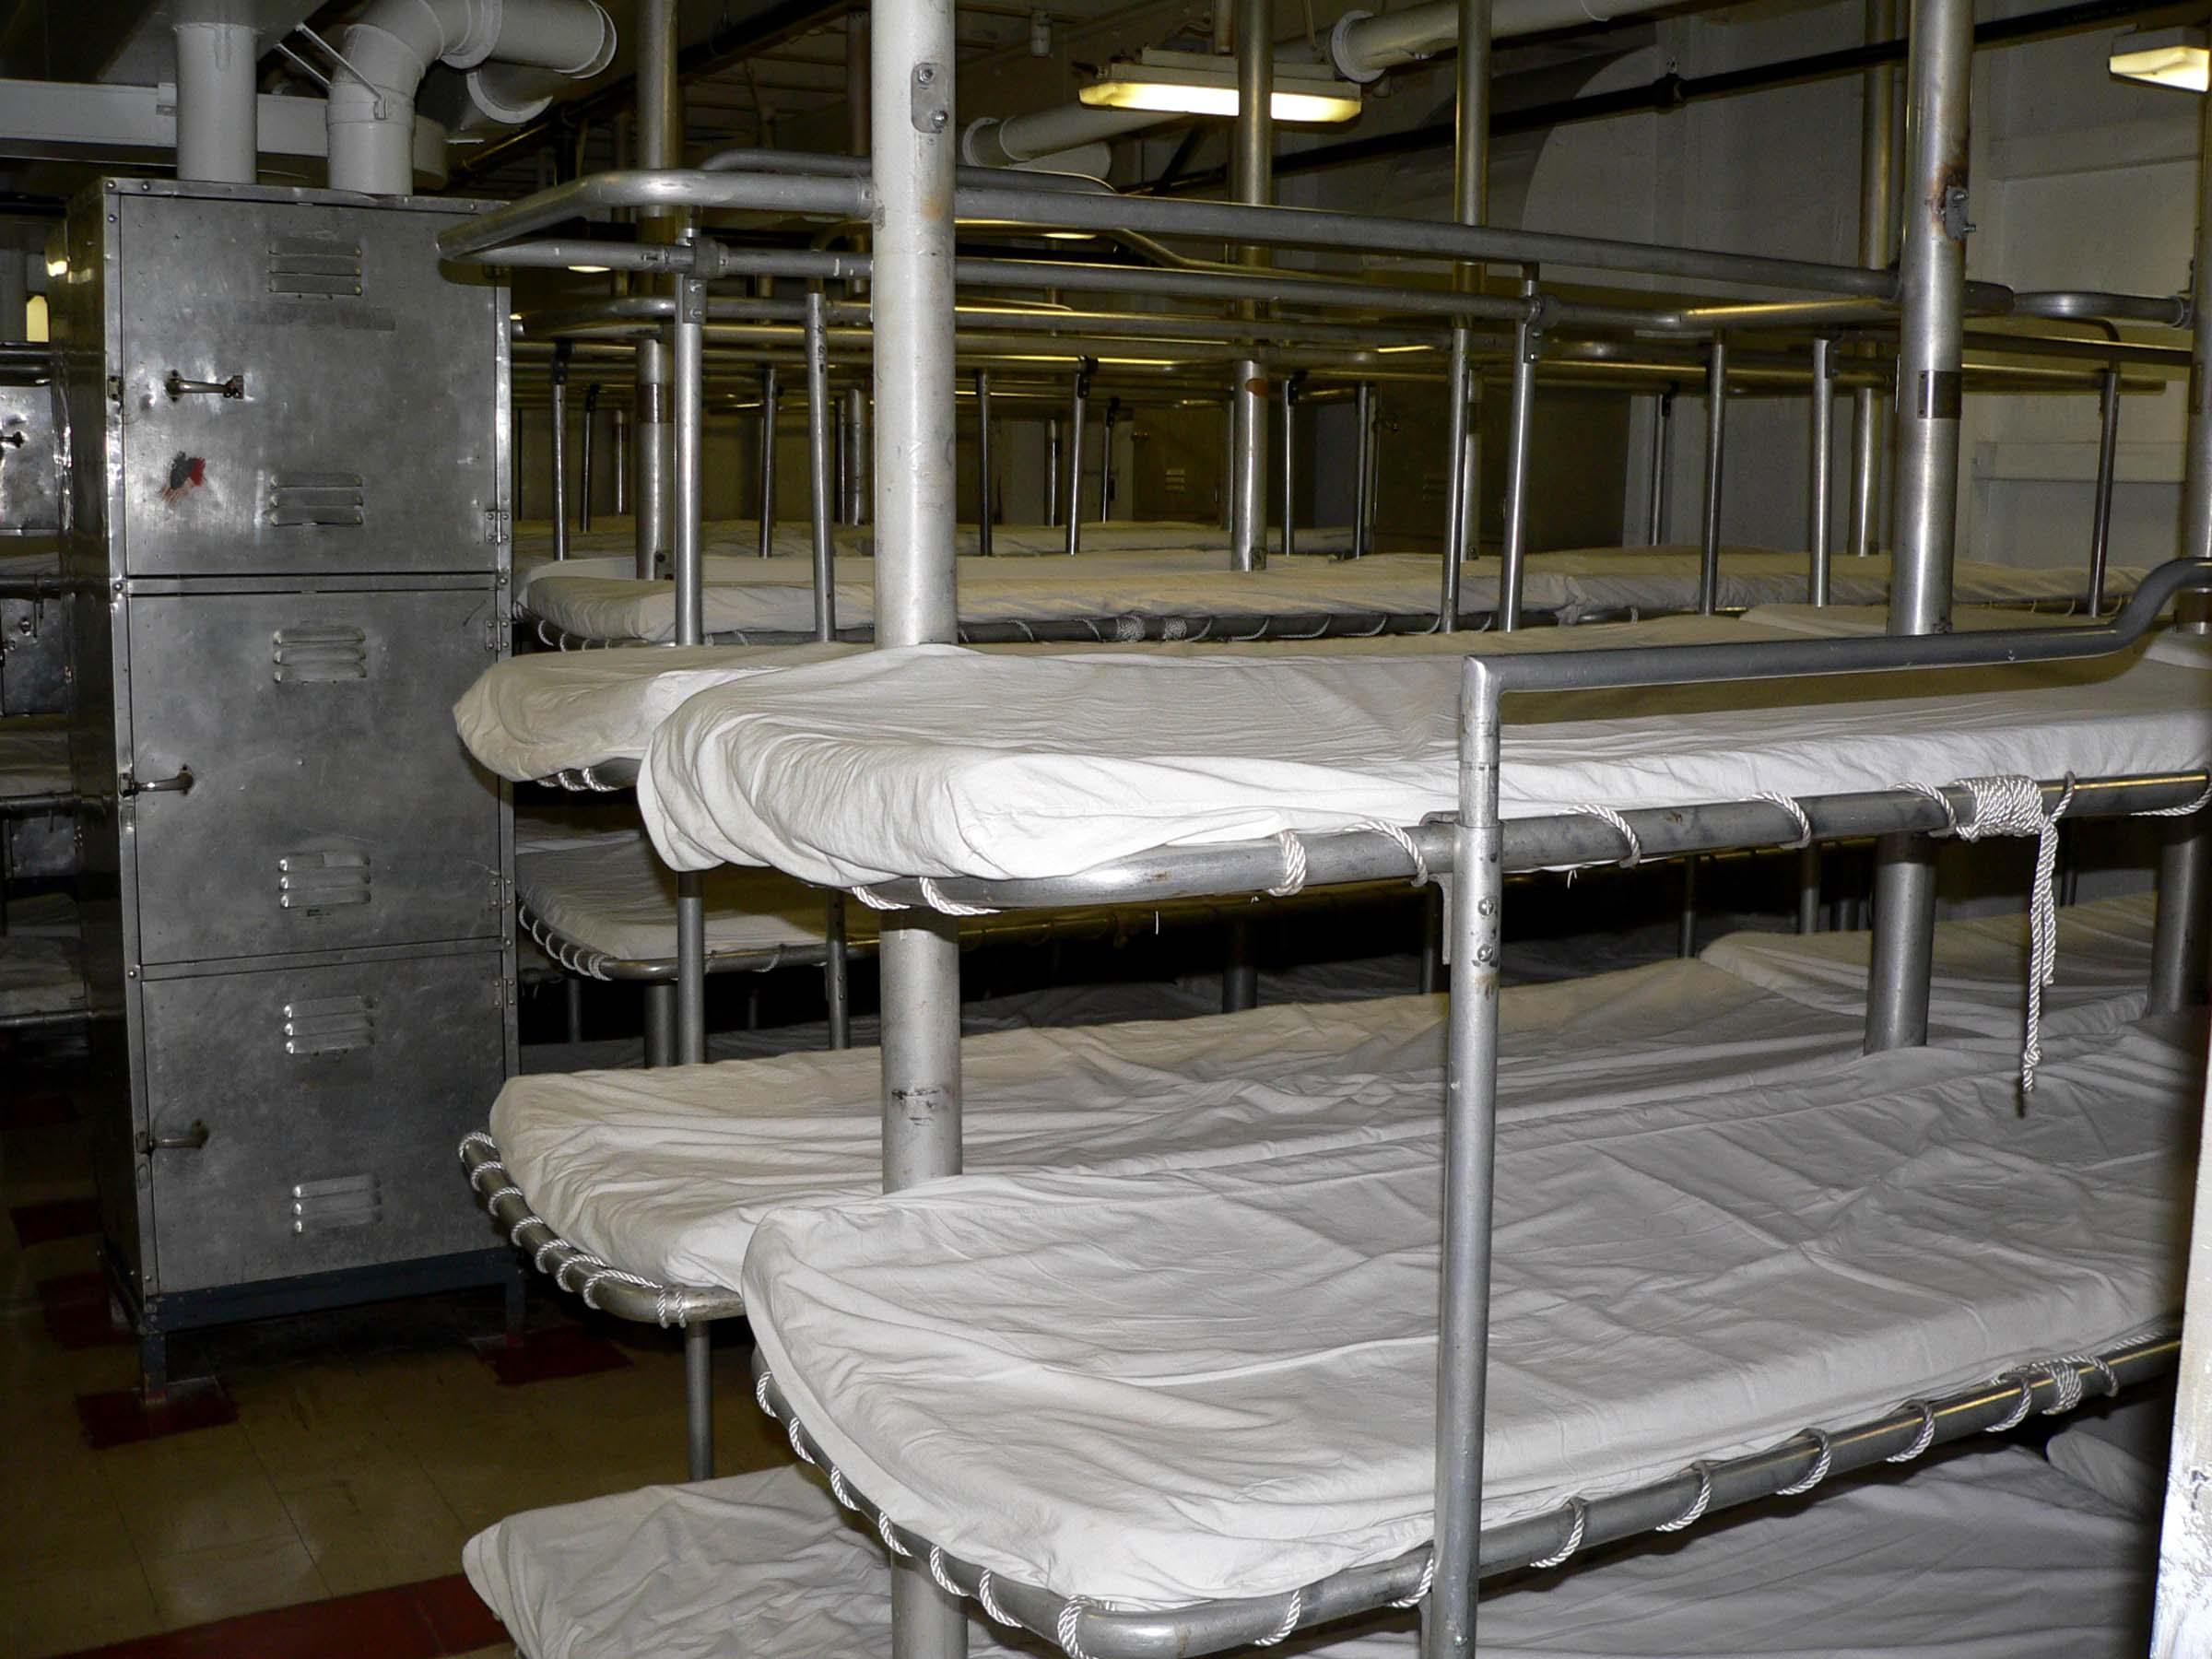 Military Bunk Beds Uk